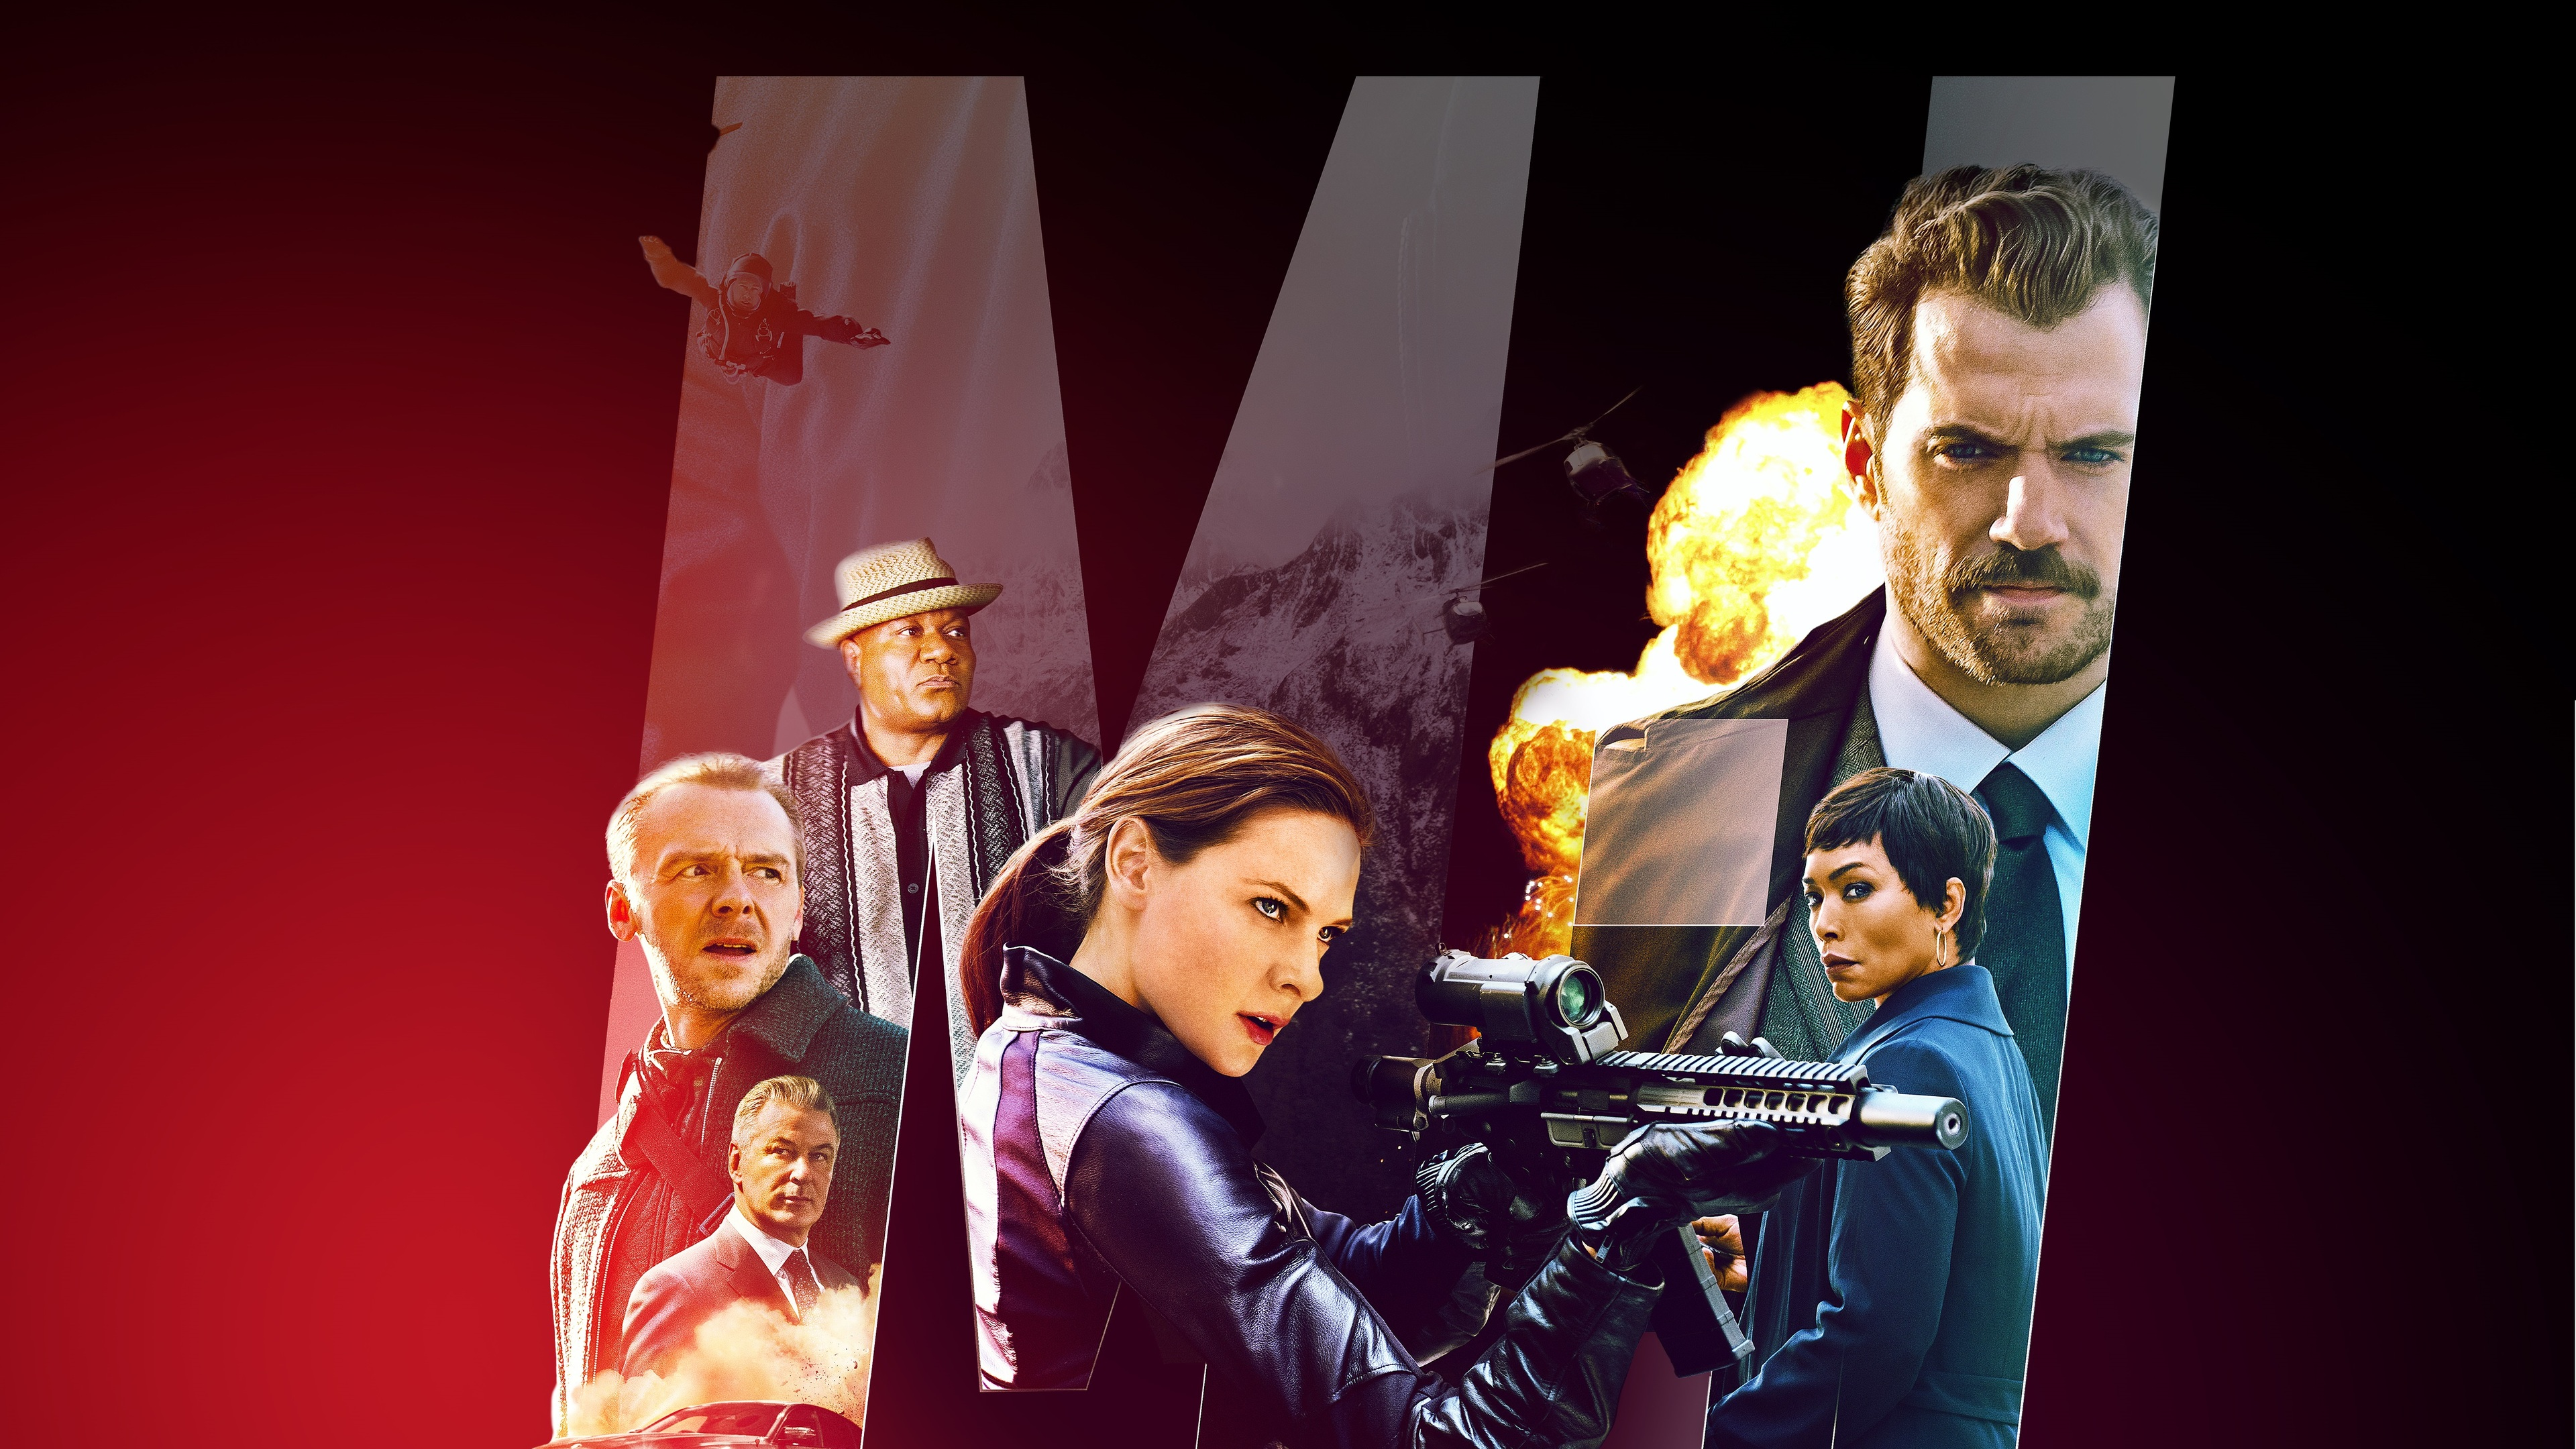 mission impossible fallout 5k key art 1537645501 - Mission Impossible Fallout 5k Key Art - movies wallpapers, mission impossible fallout wallpapers, mission impossible 6 wallpapers, hd-wallpapers, 5k wallpapers, 4k-wallpapers, 2018-movies-wallpapers